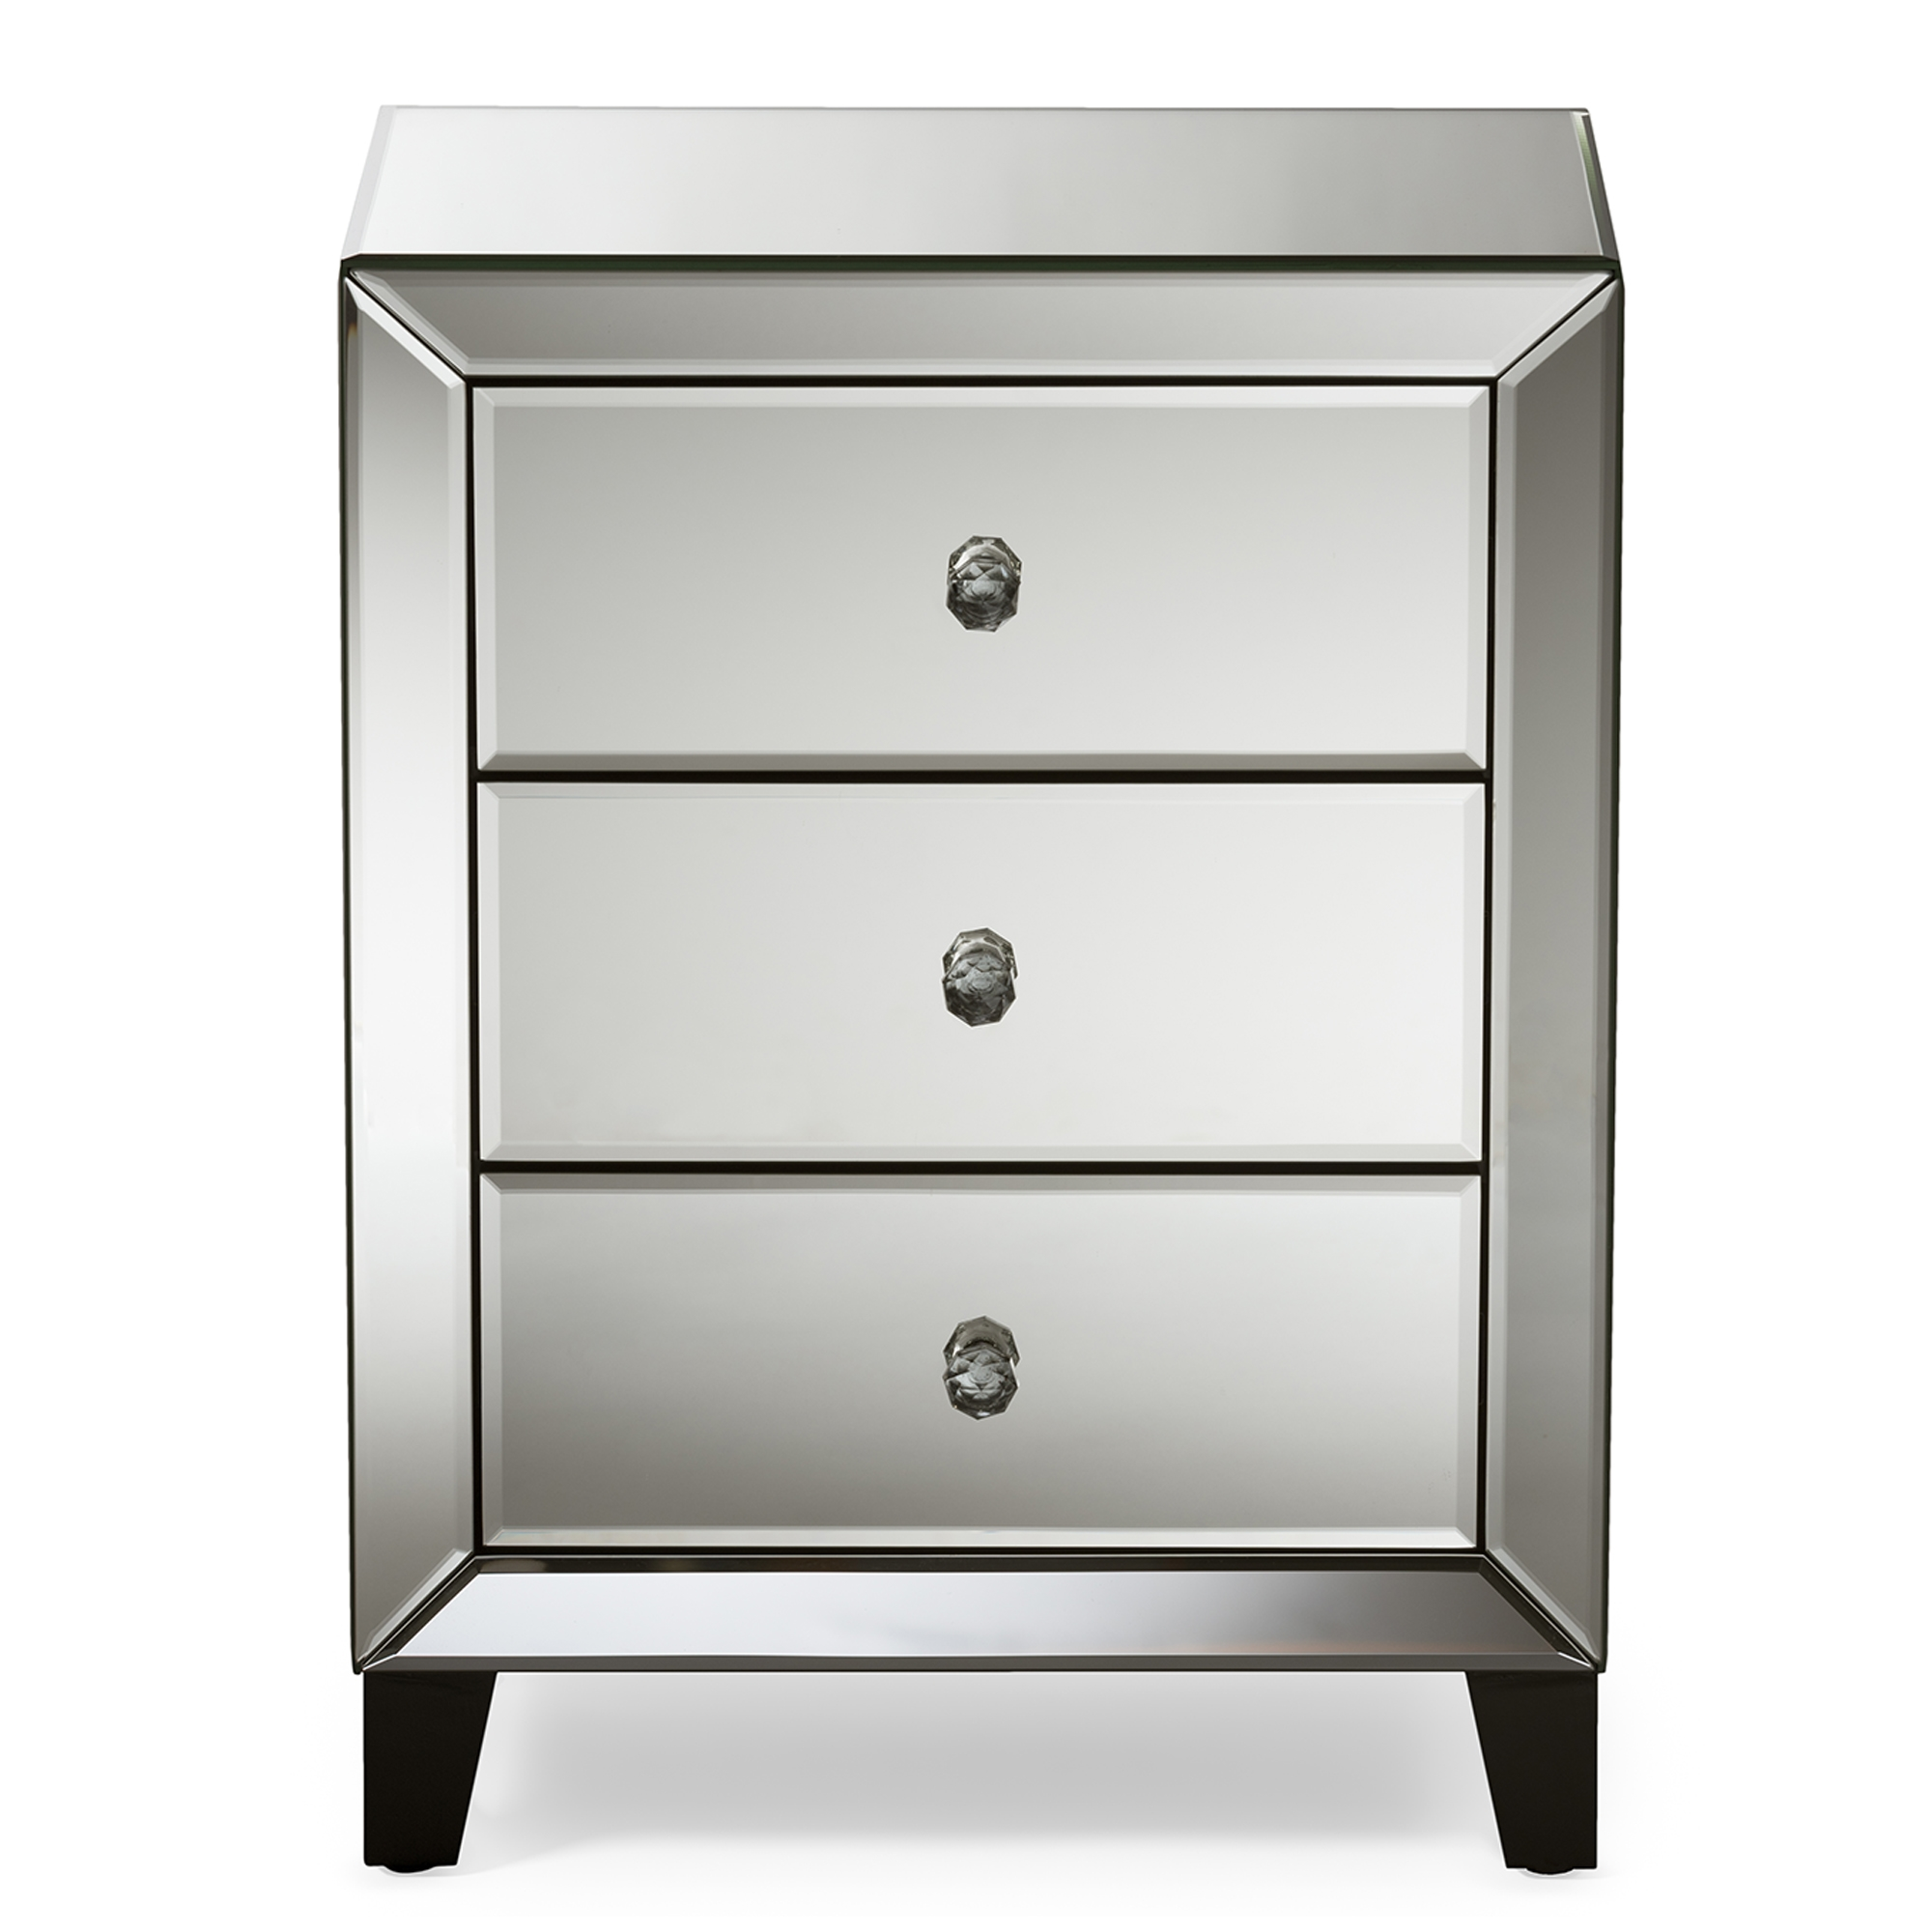 baxton studio chevron modern and hollywood regency glamour style mirrored 3drawers nightstand bedside table